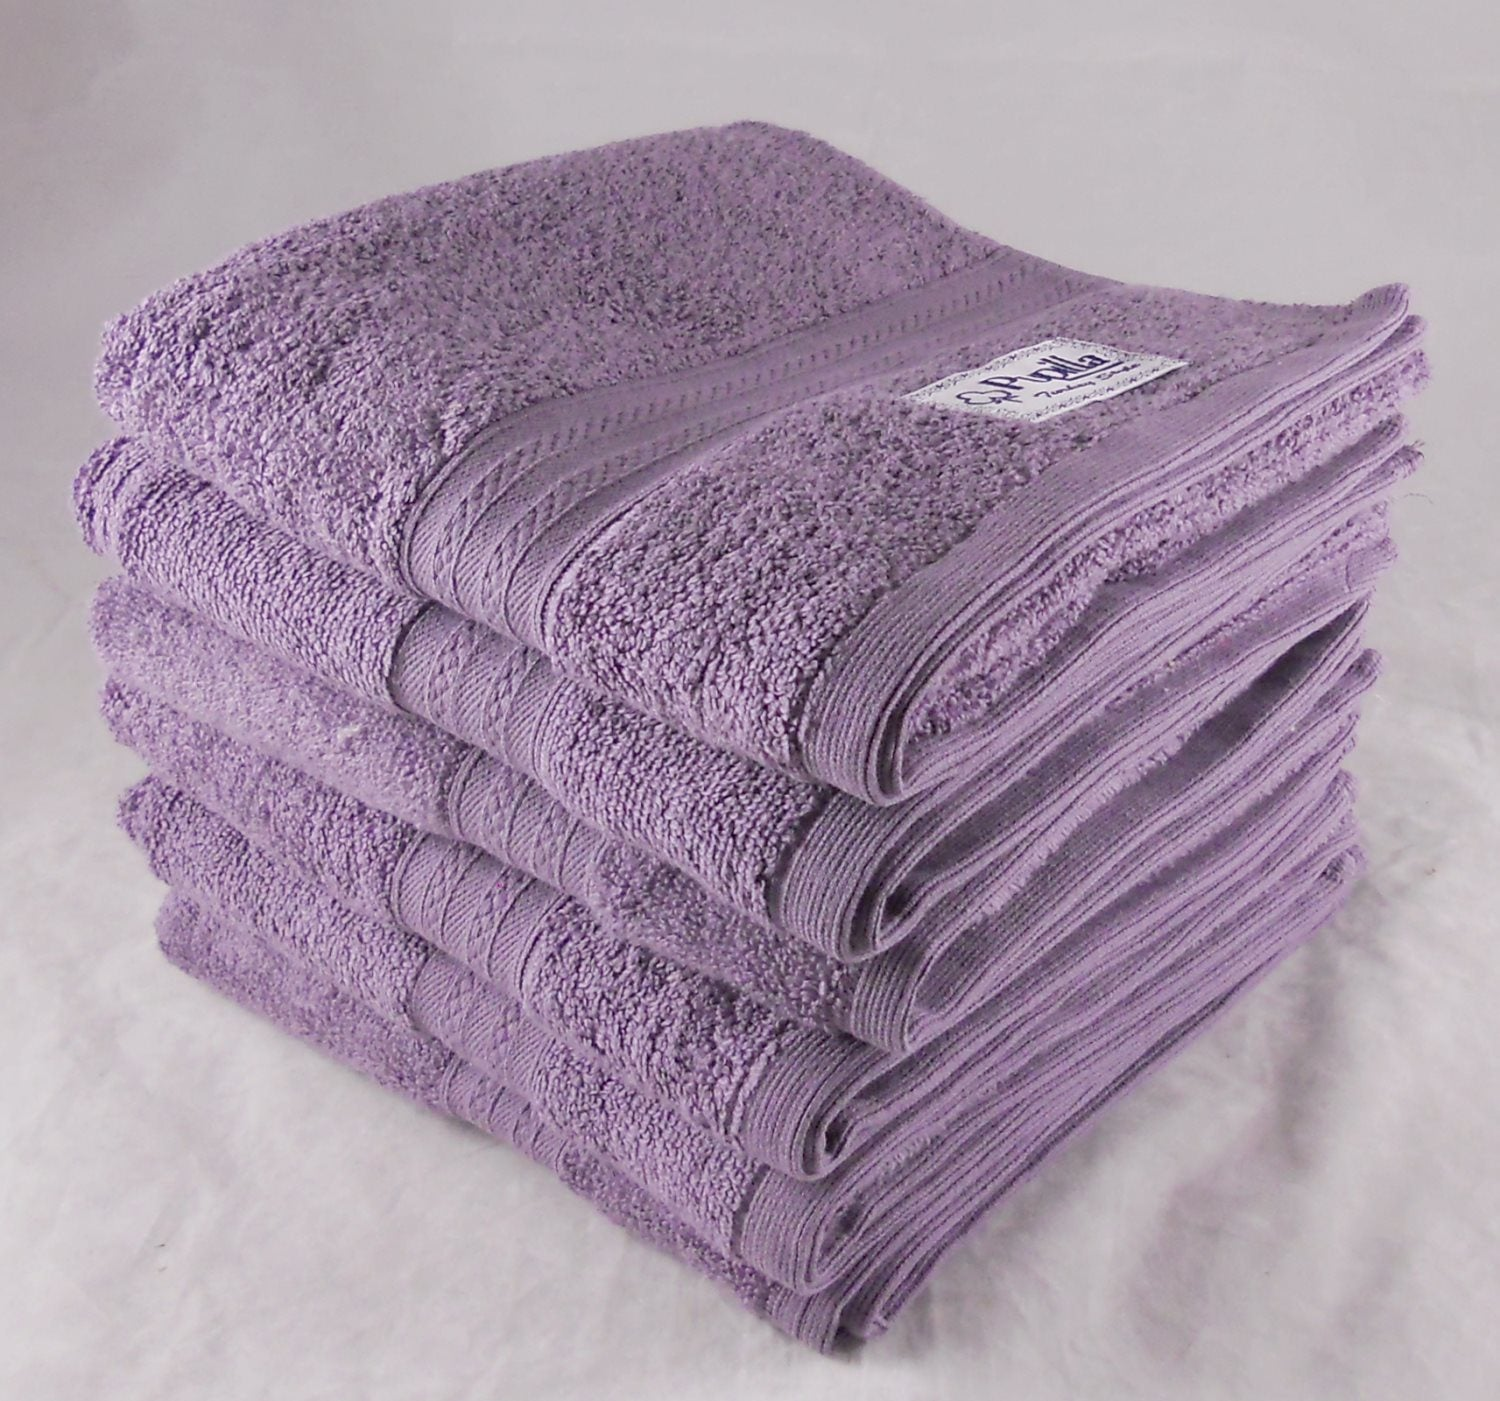 Mulberry Purple Zero Twist Bath Towels Turkish Cotton 500gsm Pack of 3